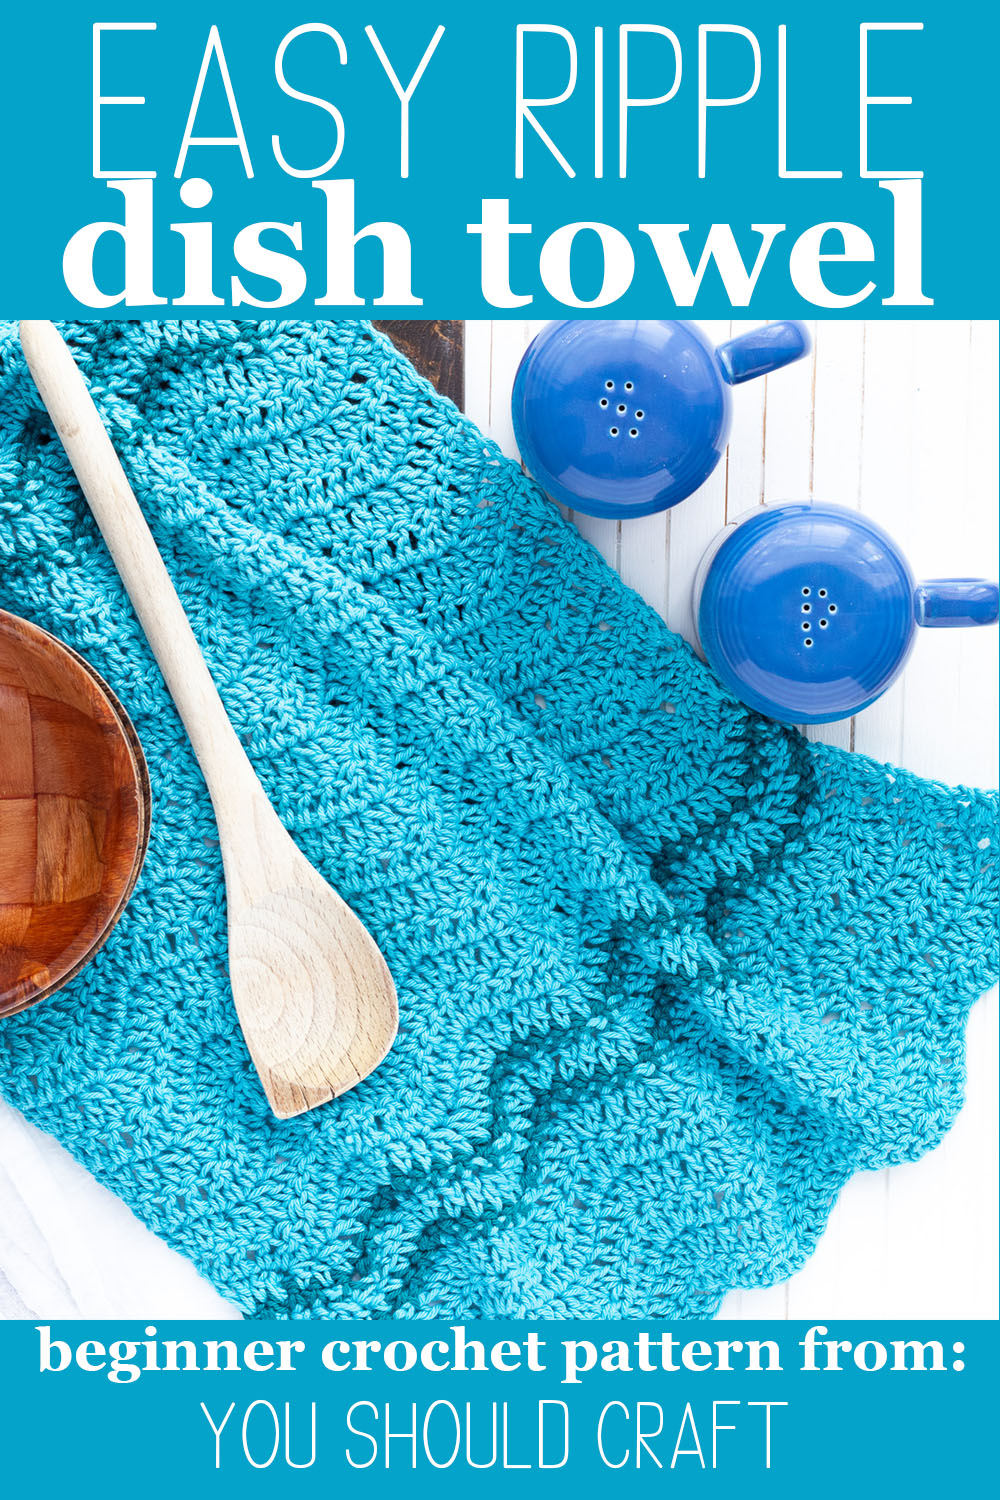 """blue crocheted towel with wooden spoon and salt and pepper shakers with text """"easy ripple dish towel - beginner crochet pattern from you should craft"""""""